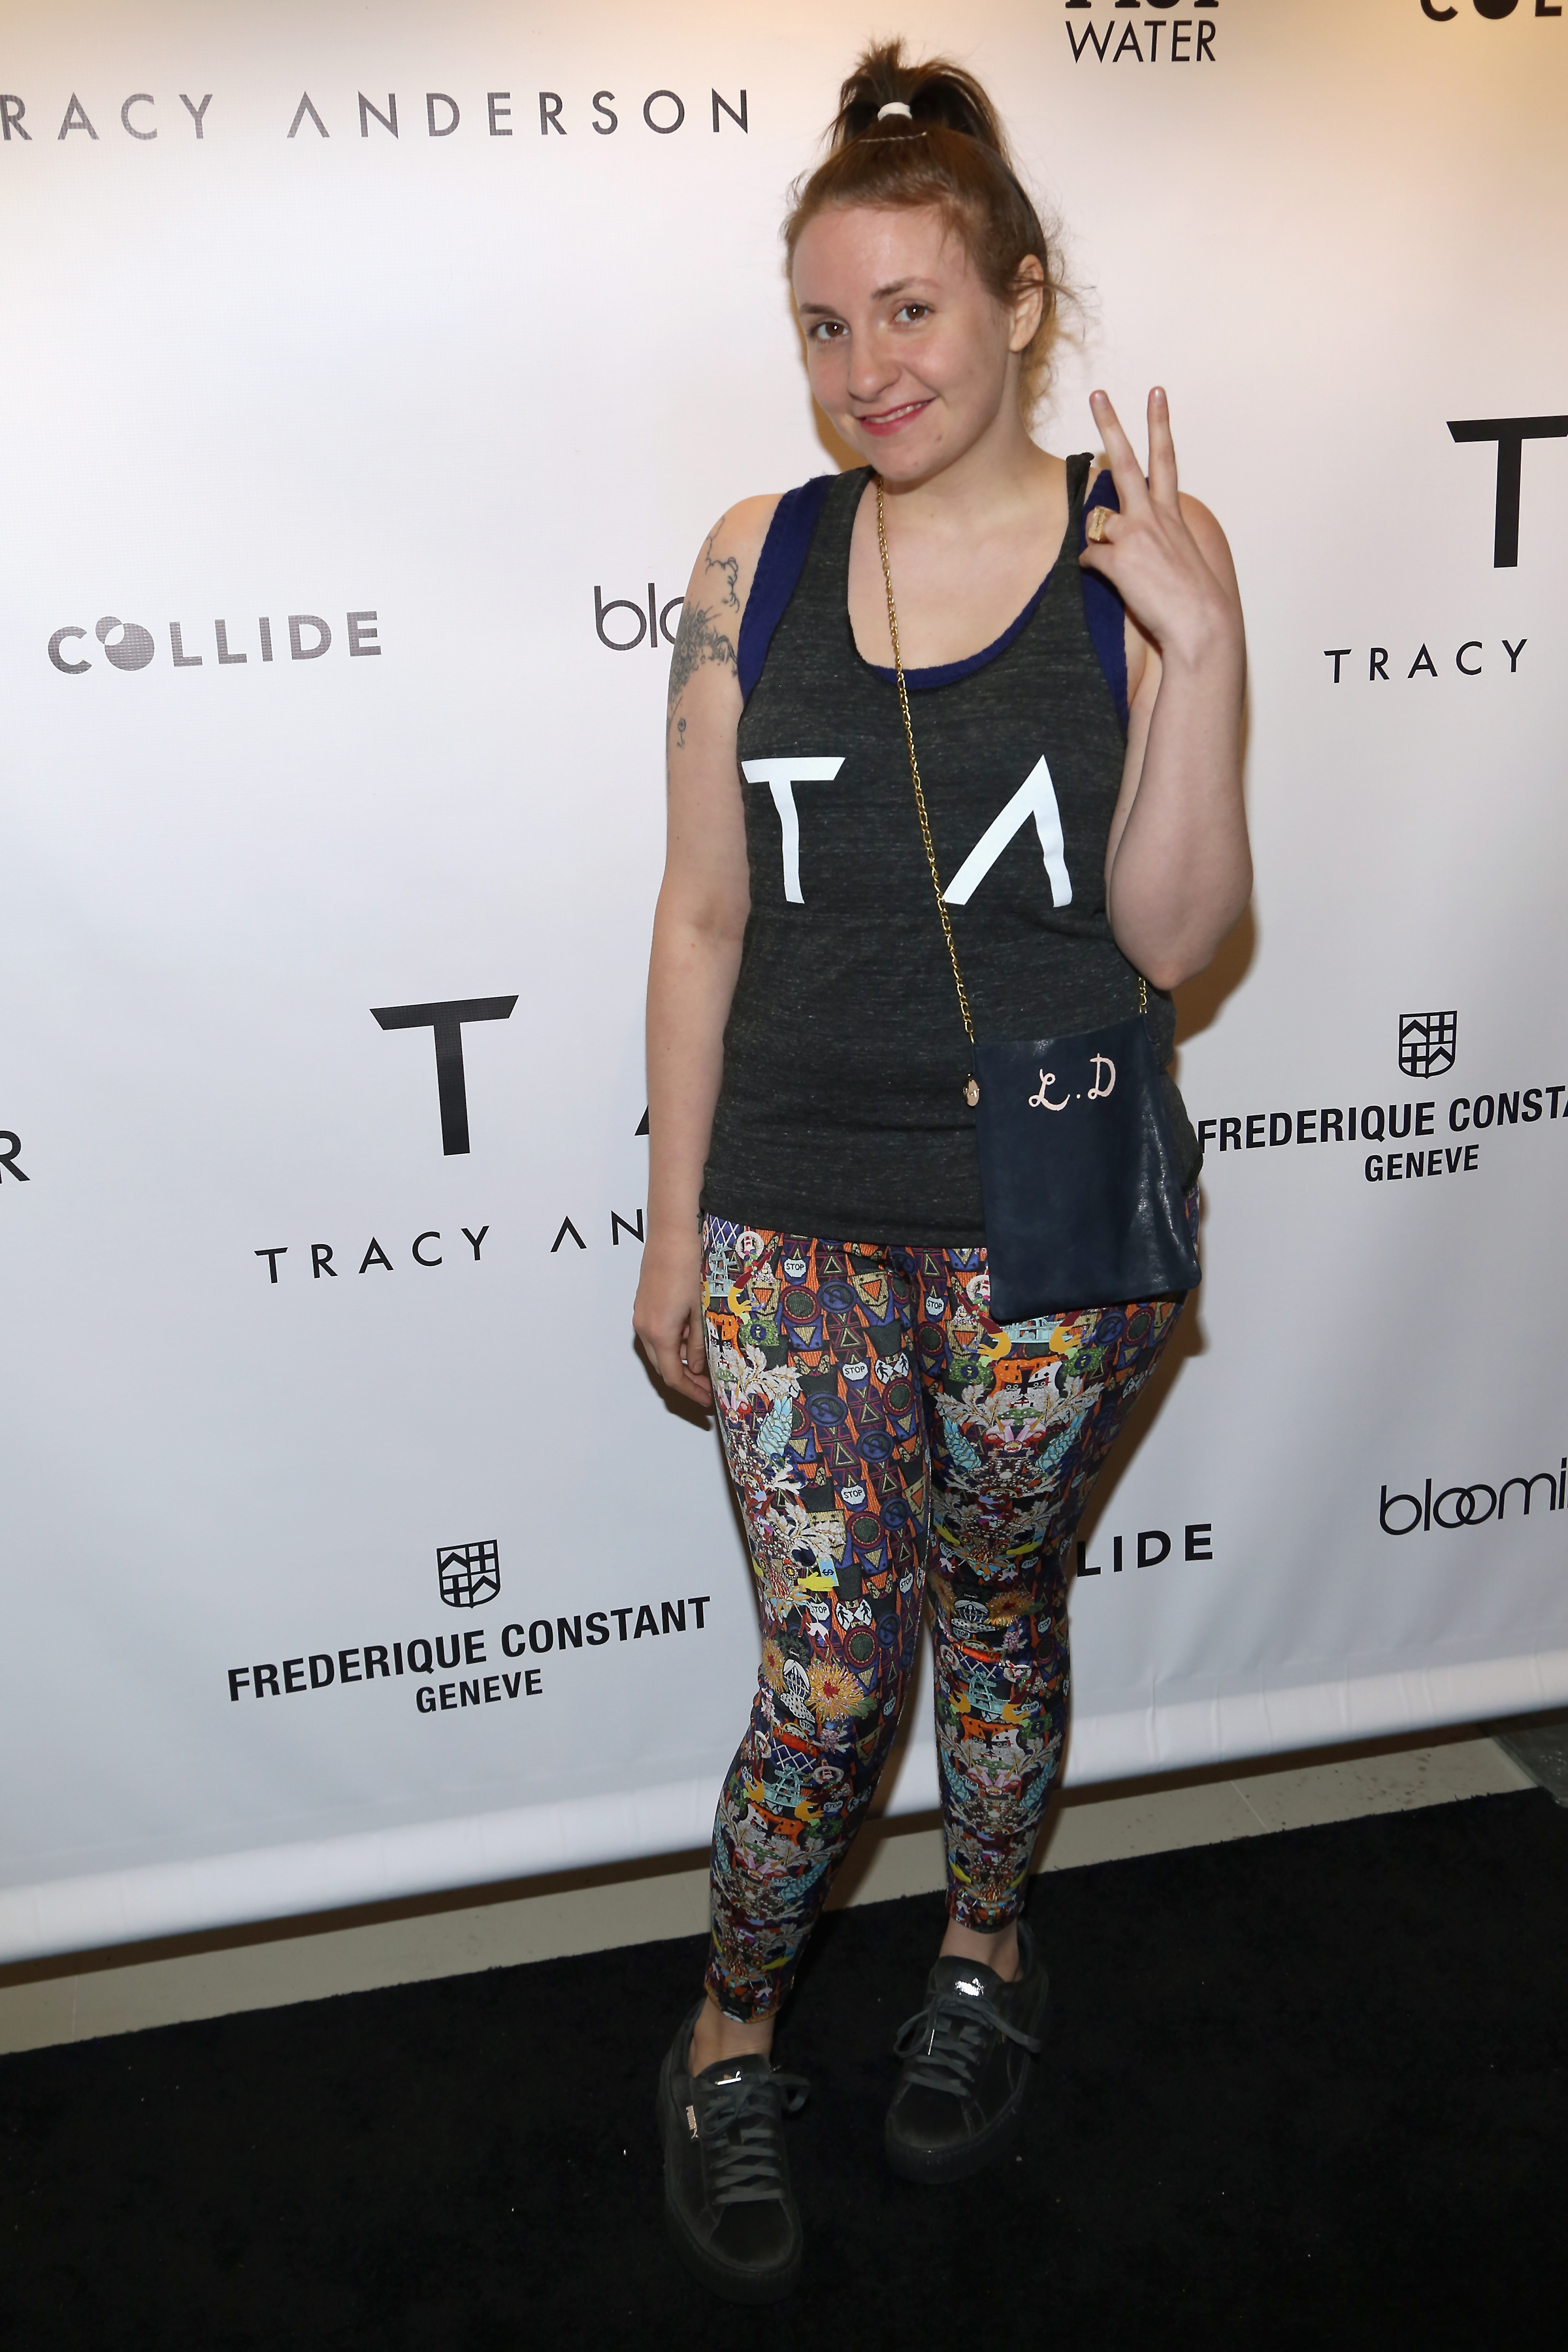 Lena Dunham: 'My weight loss isn't a triumph' or 'a sign I've given in to trolls'